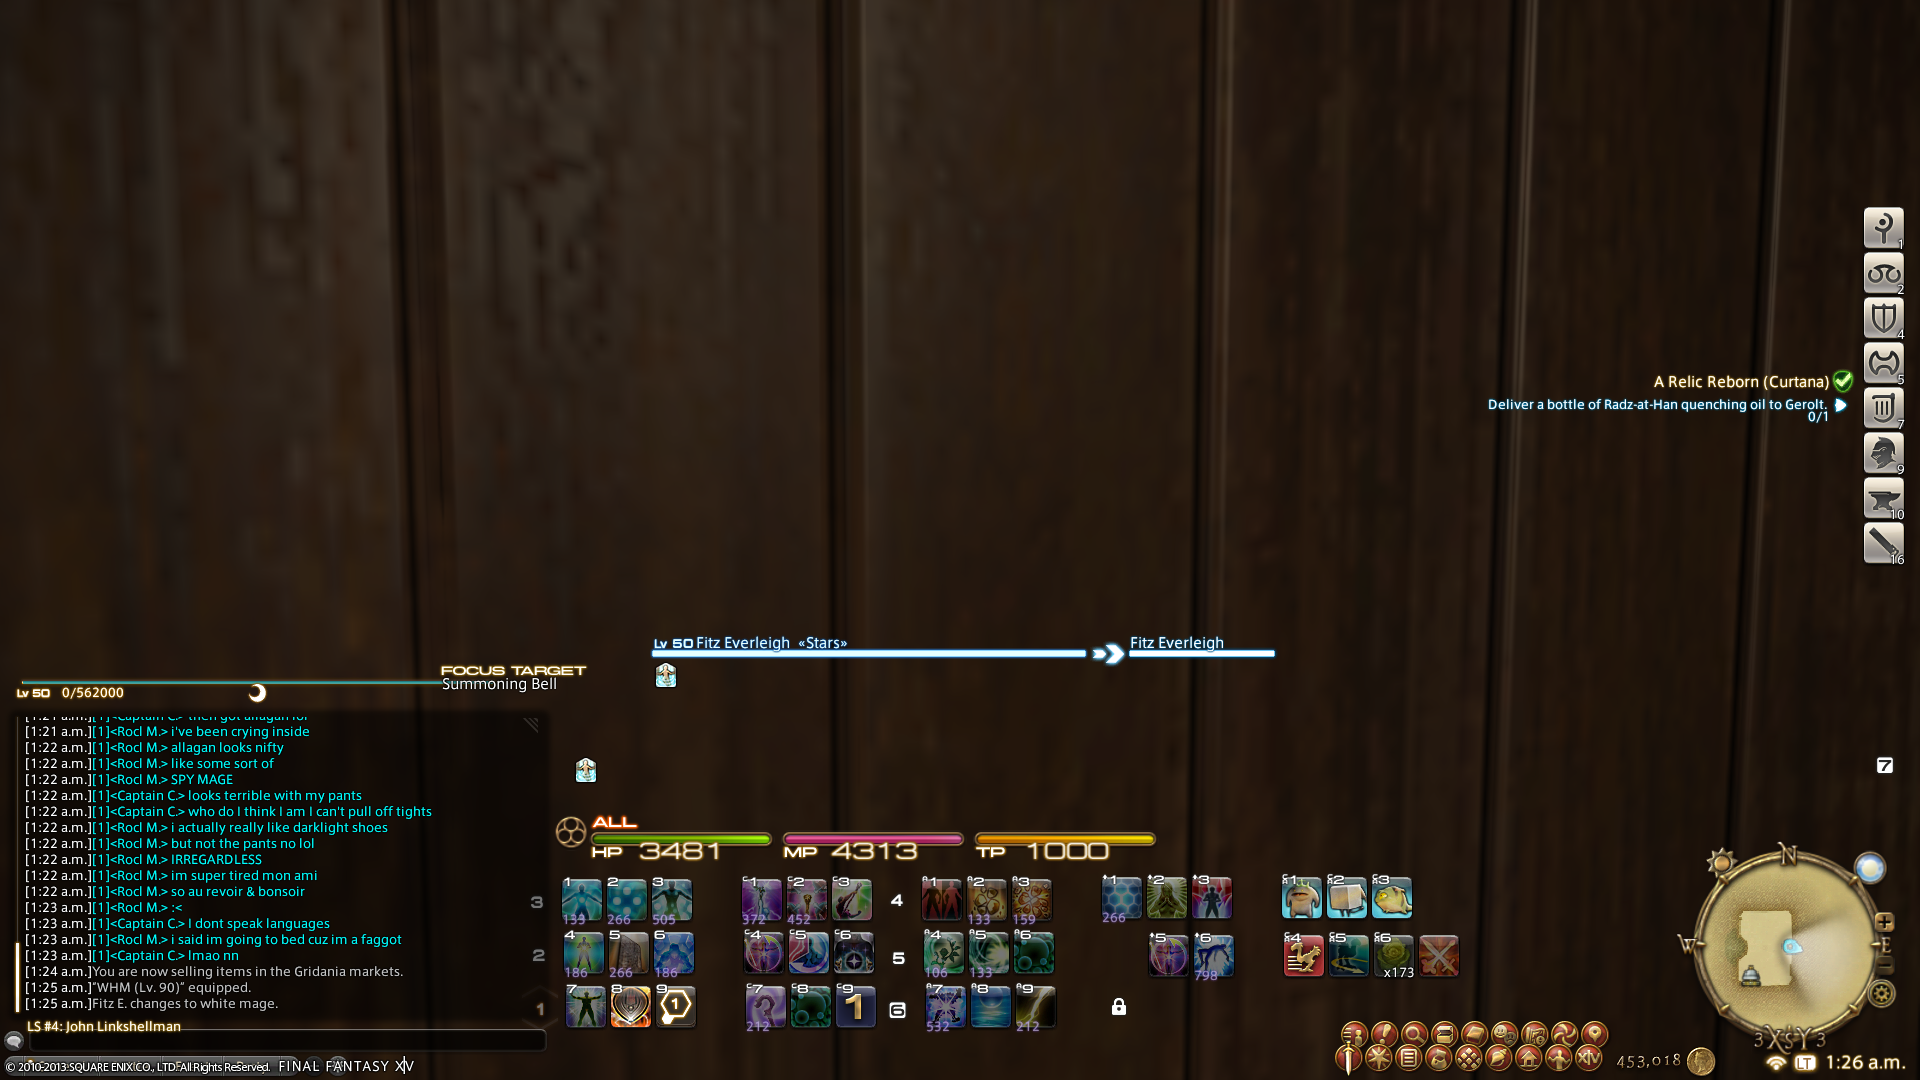 tacotaru ffxiv make petbar command toggle your visibility pictures remember anyone post know